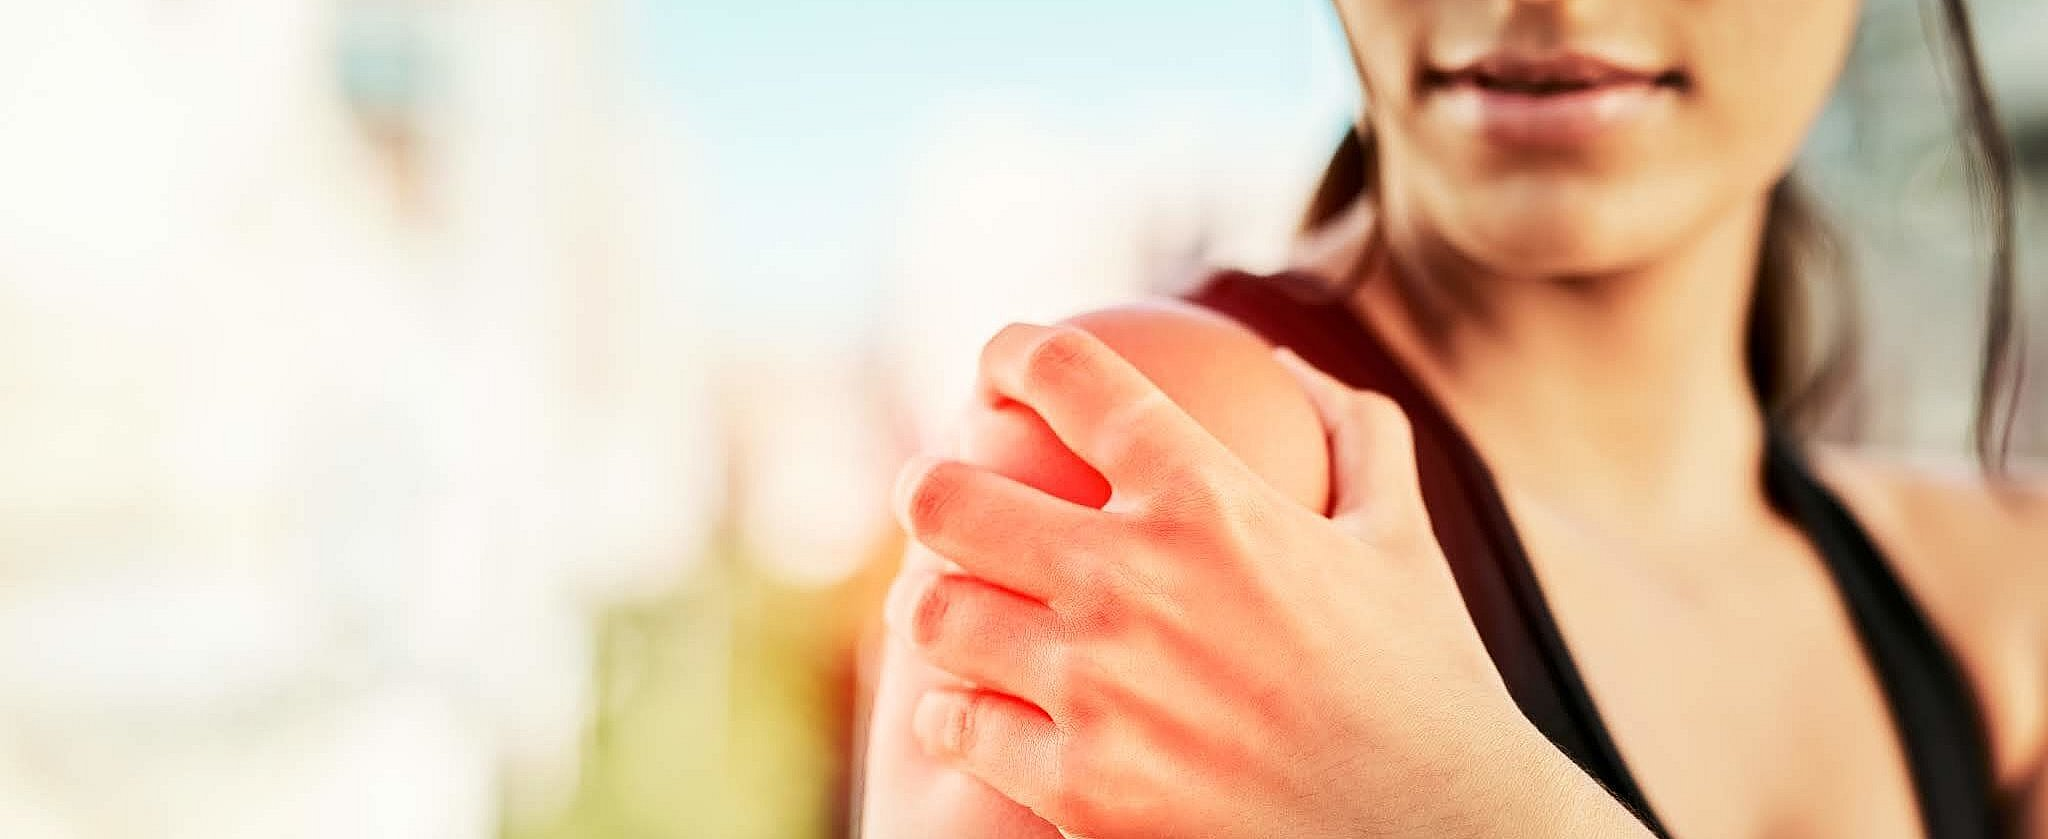 Closeup shot of a sporty young woman holding her shoulder in pain while exercising outdoors